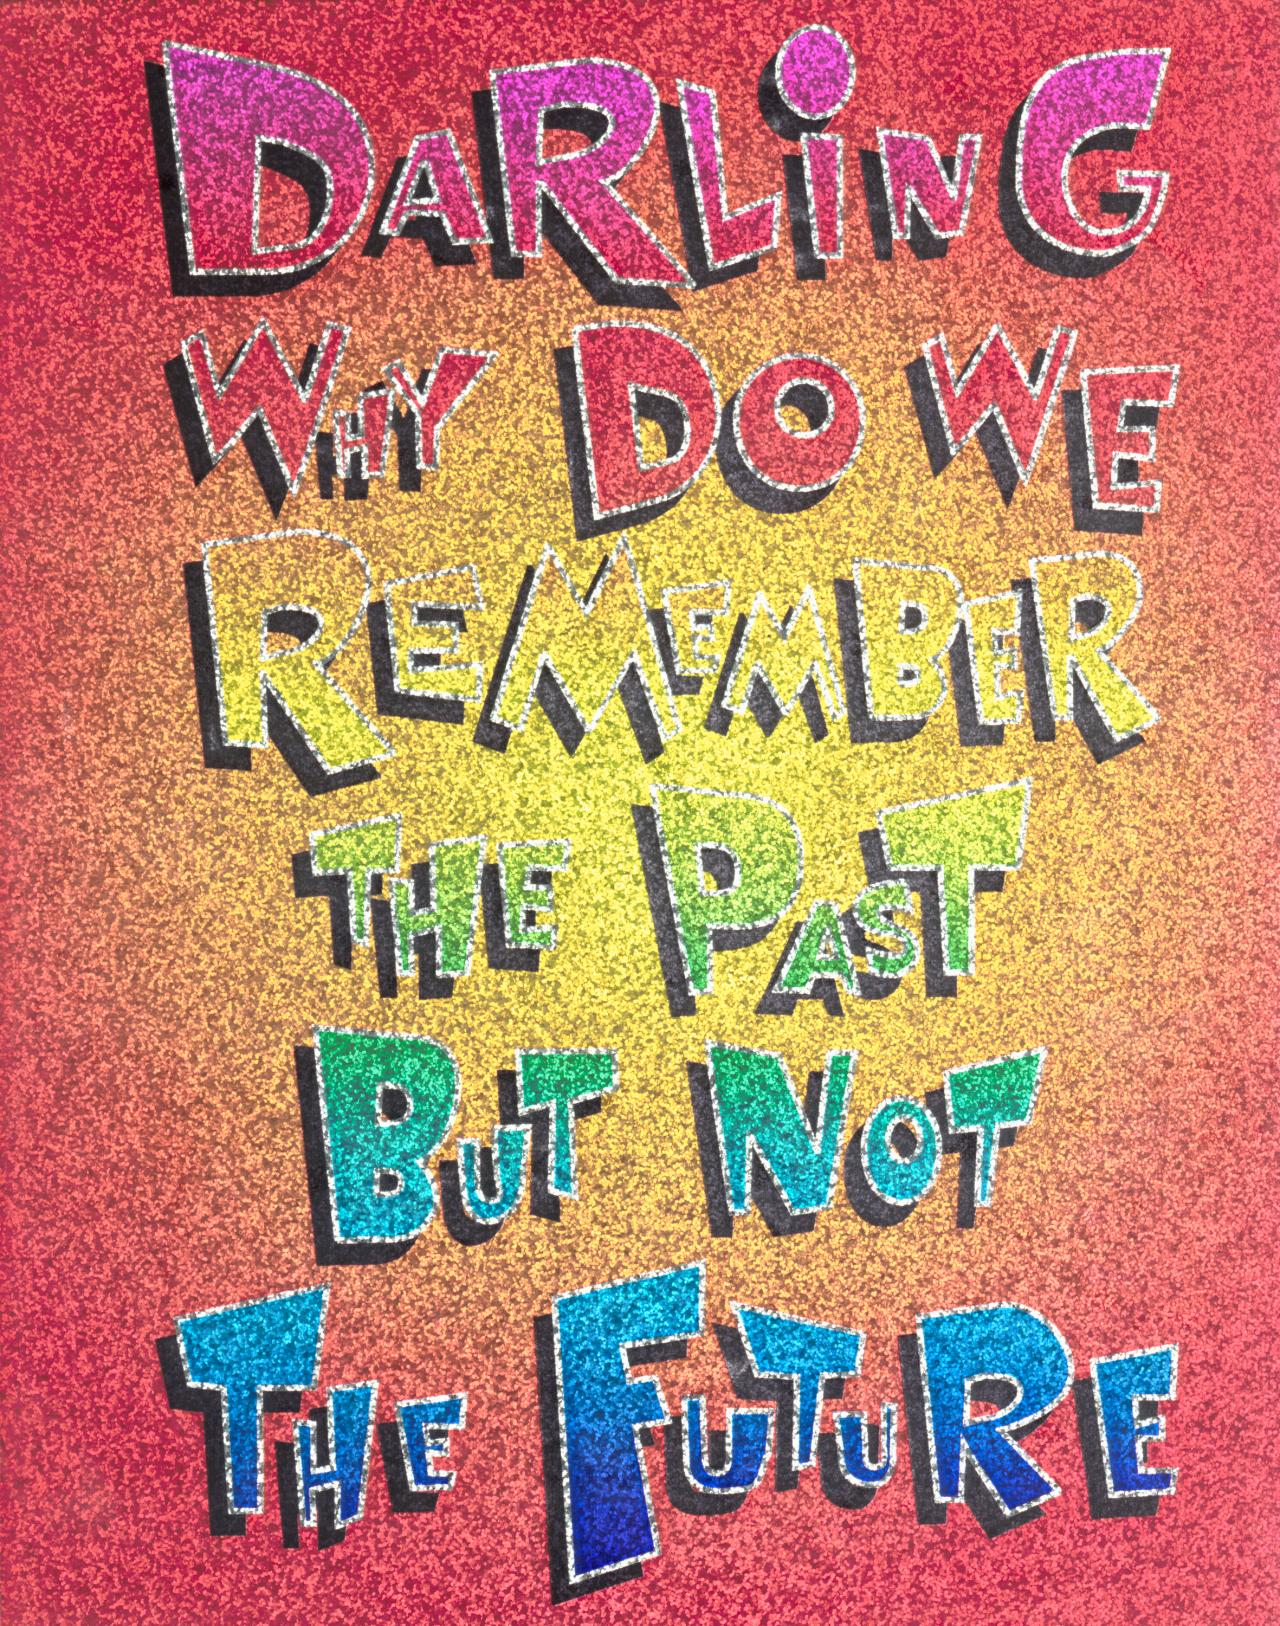 Darling why do we remember the past but not the future